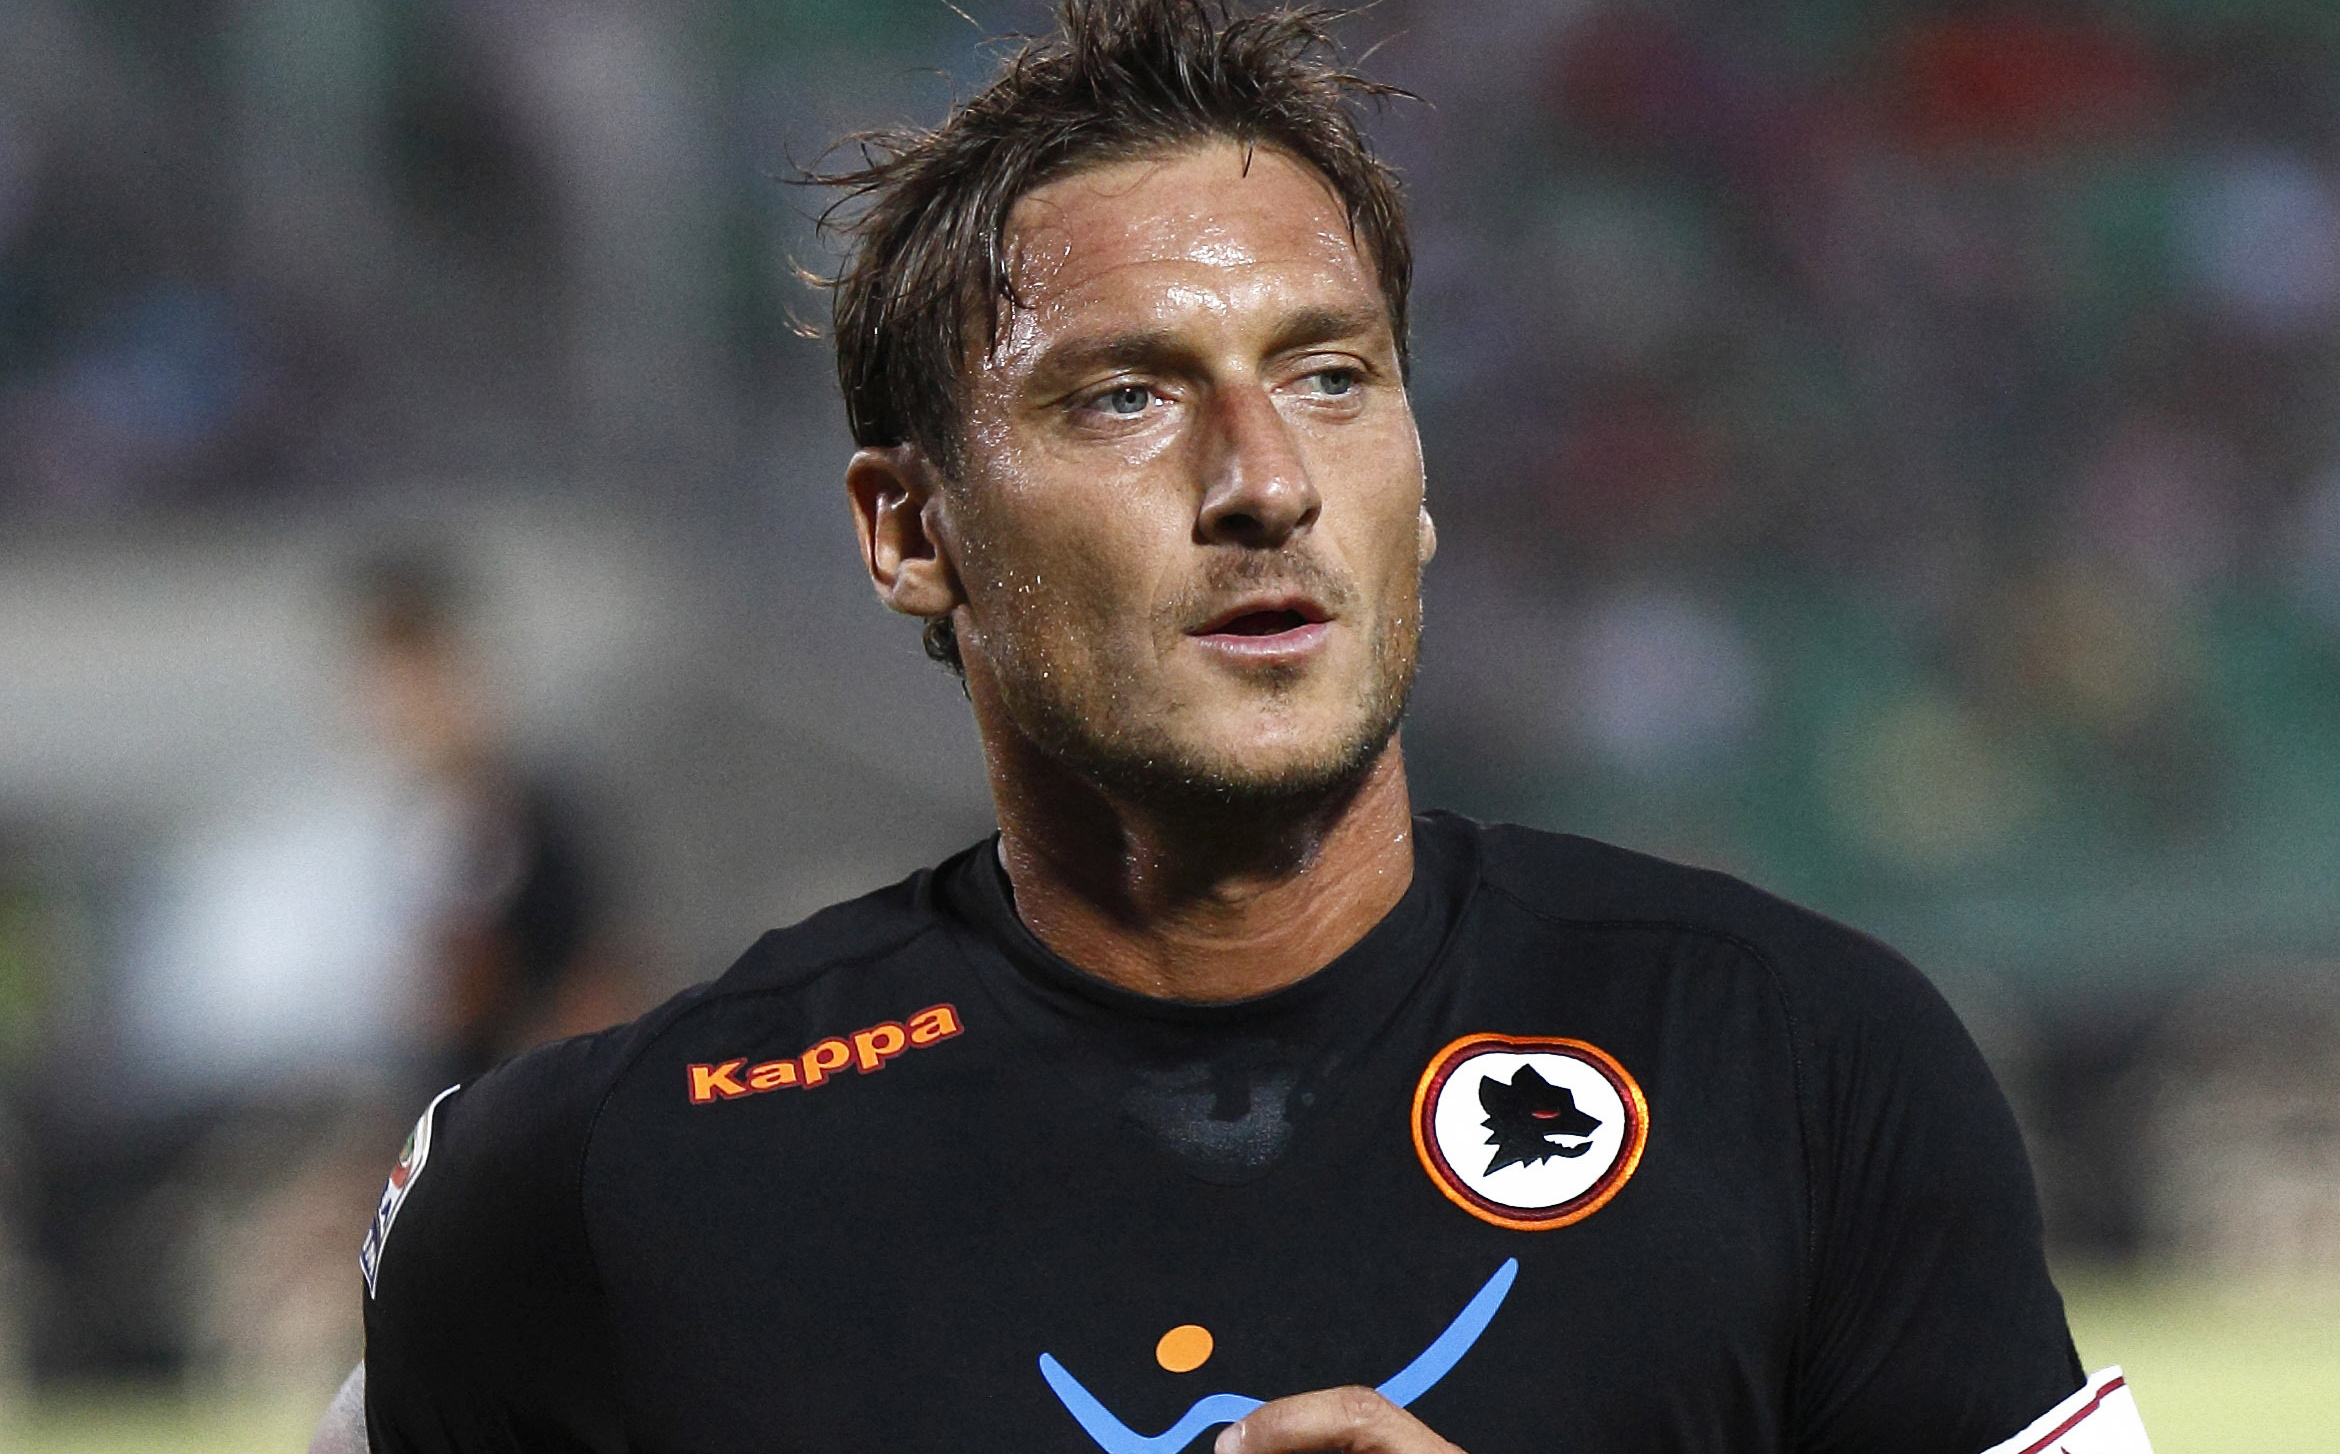 Francesco Totti An unusual football player